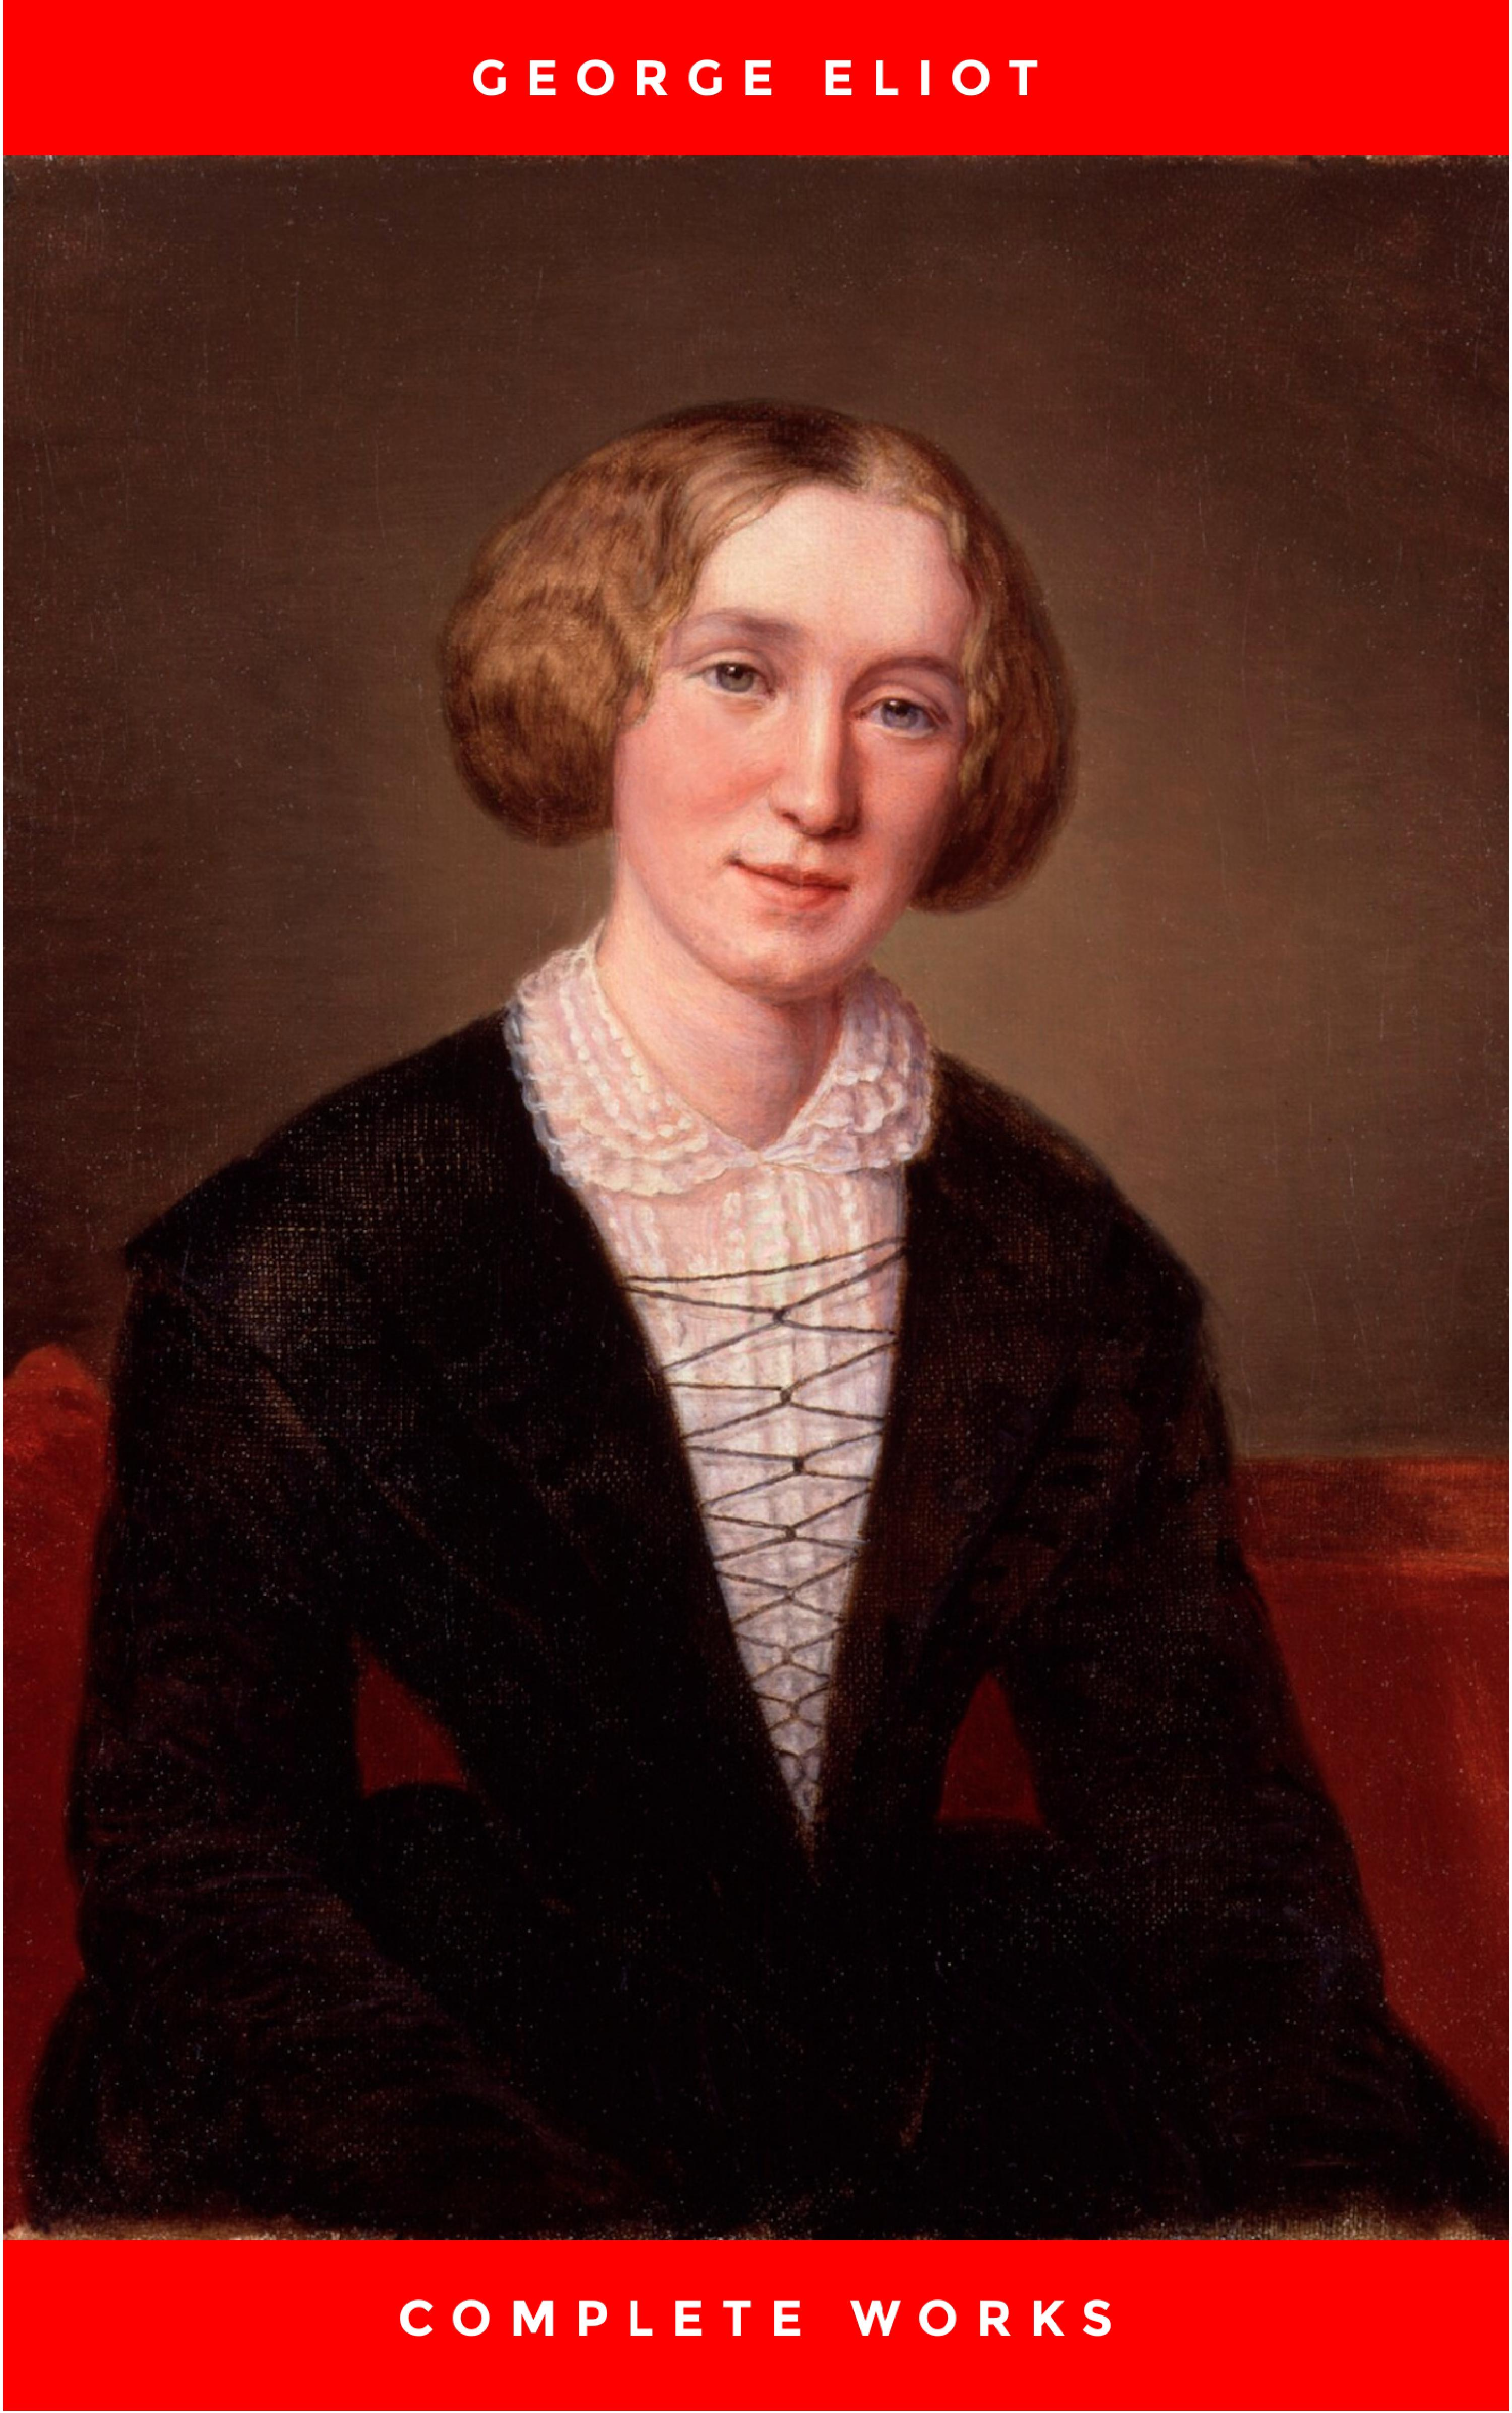 George Eliot The Complete Works of George Eliot.(10 Volume Set)(limited to 1000 Sets. Set #283)(edition De Luxe)